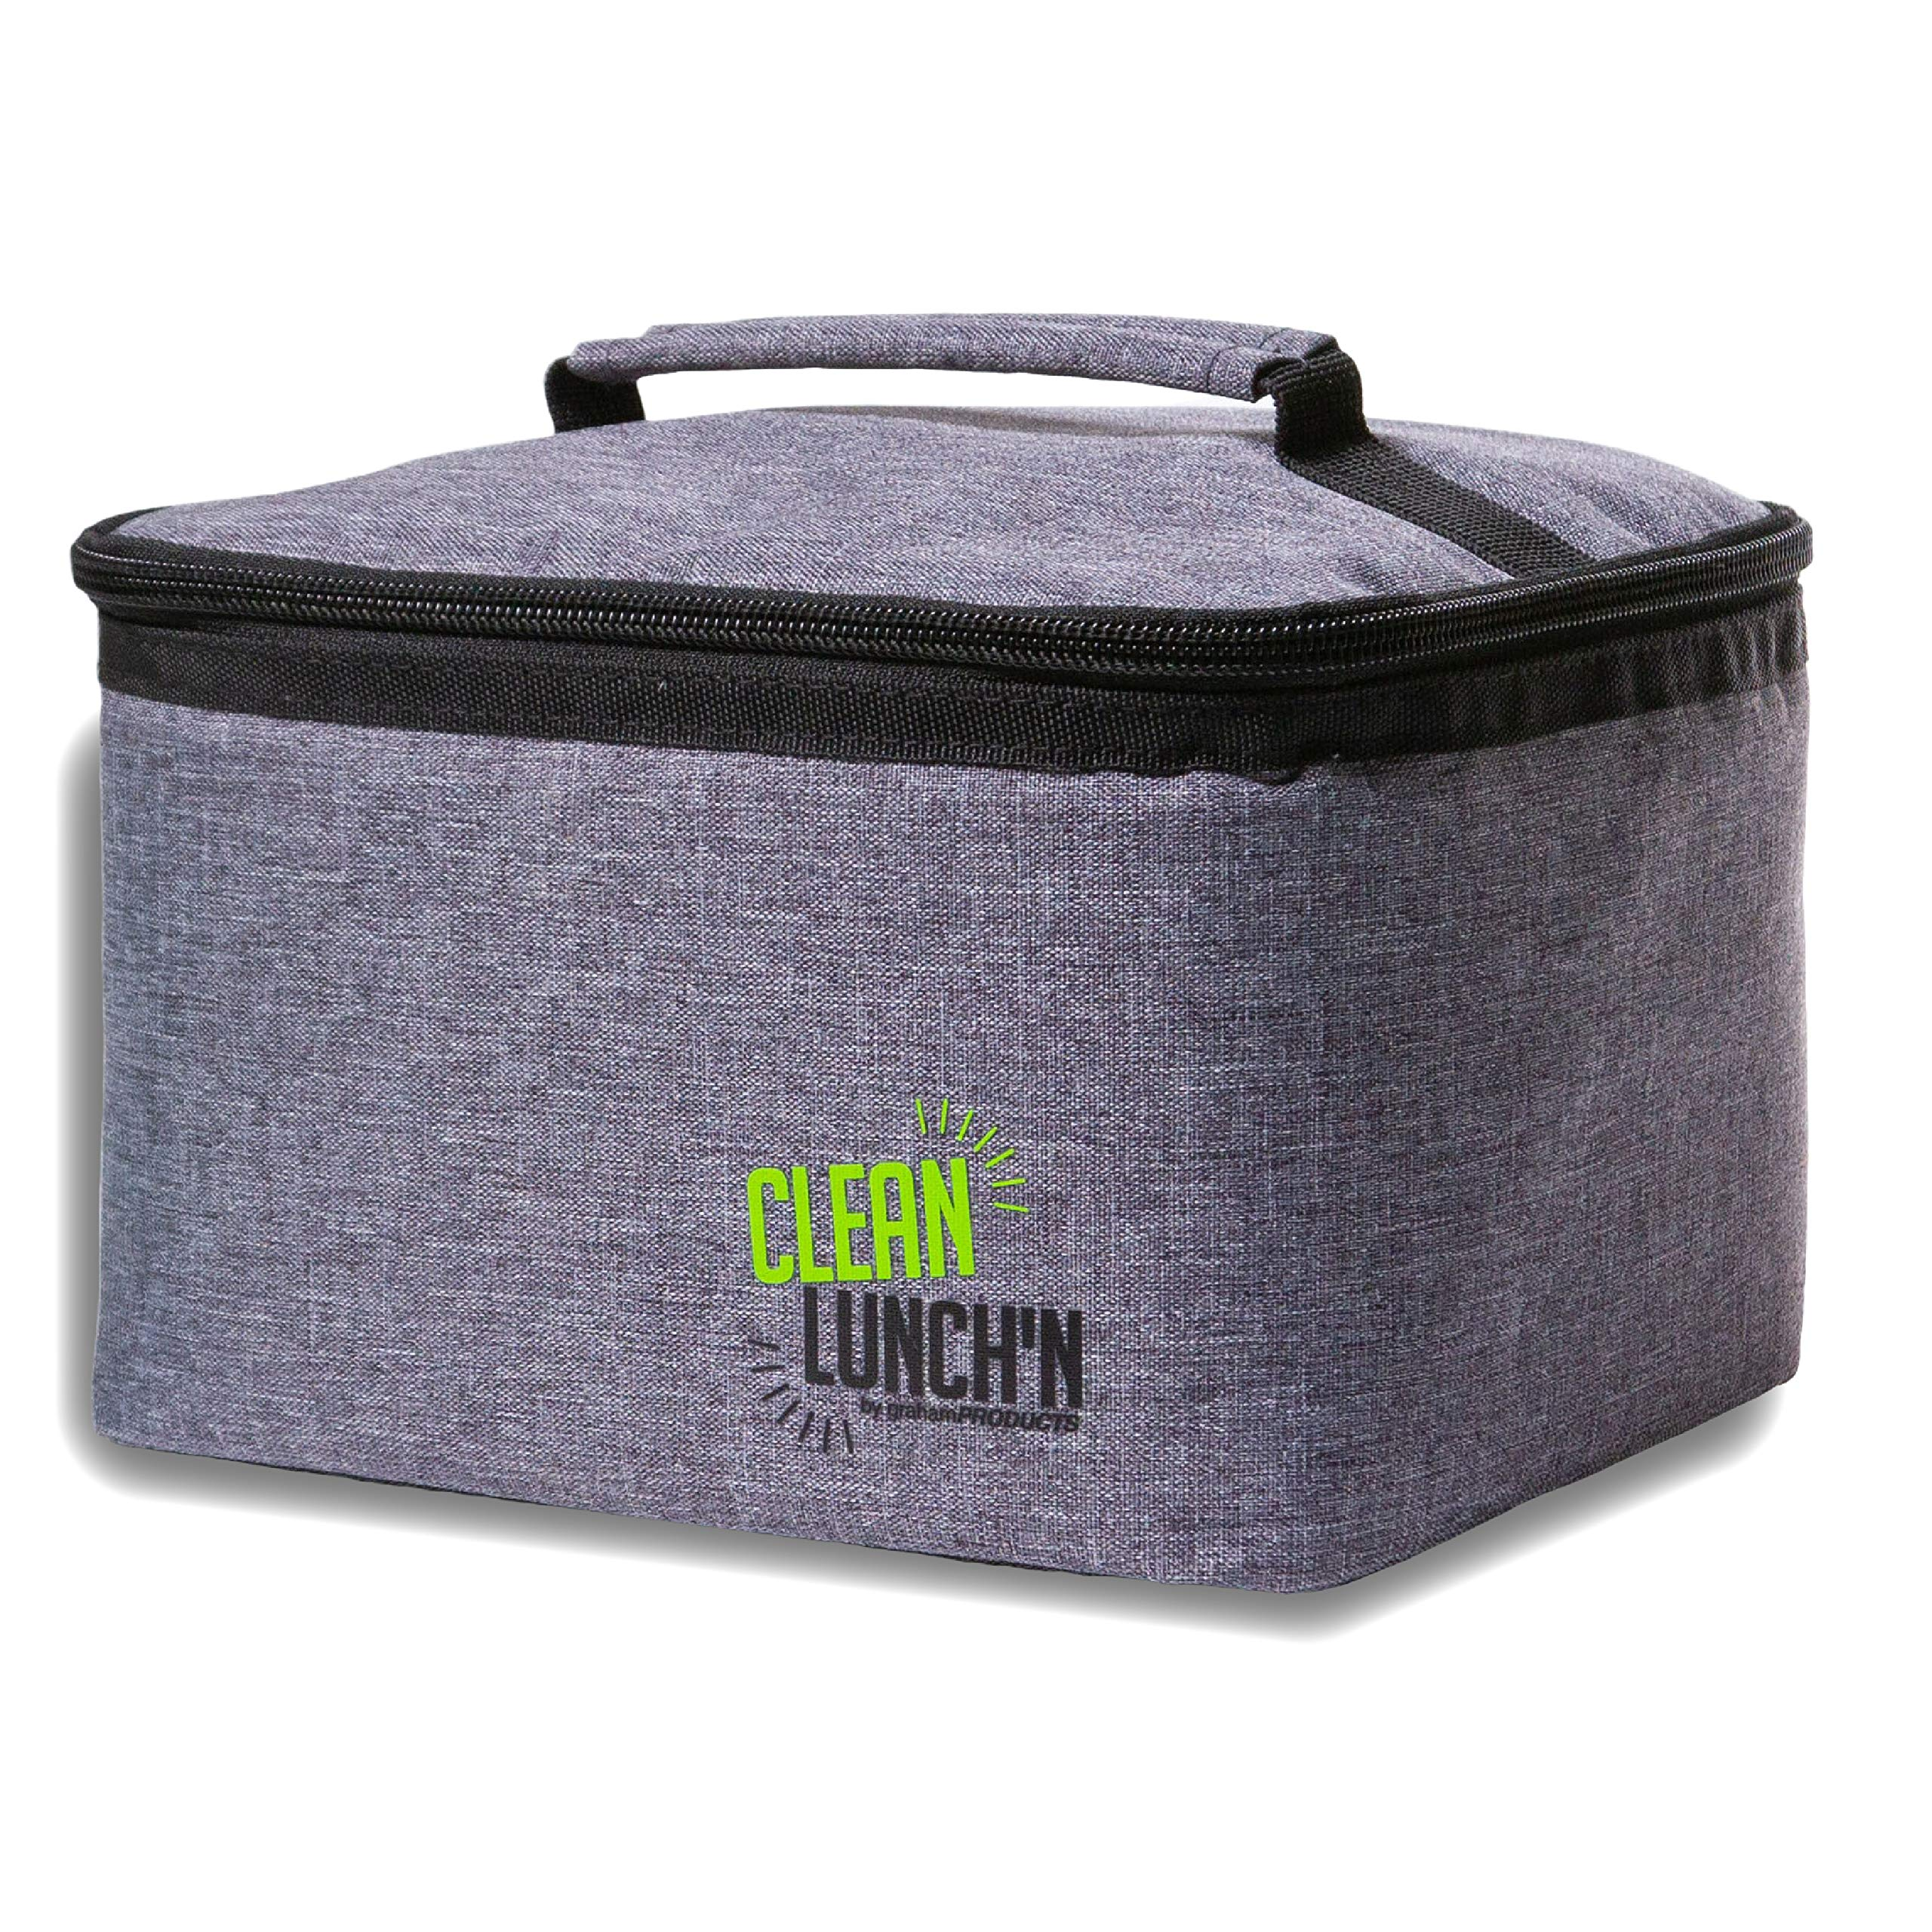 Clean LunchN Insulated Lunch Bag - Mens and Womens Large Portable Thermal Heater and Cooler Tote Box for Kids and Adults, Stainless Steel Bento Containers, Healthy Snacks, Hot or Cold Food